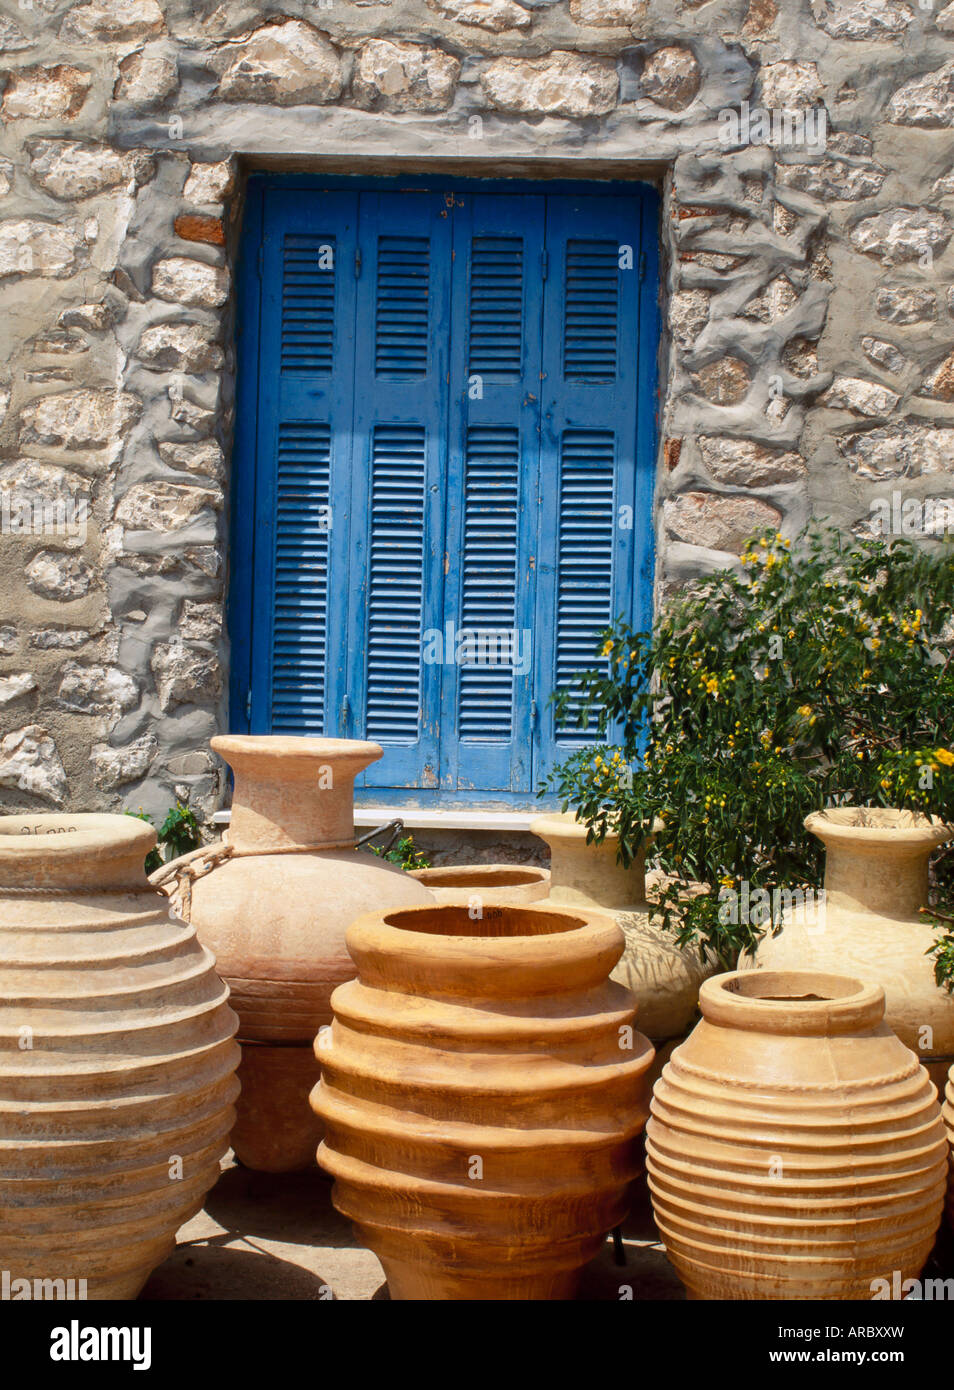 Greek urns in front of a blue door on Hydra, Argo Saronic Islands, Greece - Stock Image